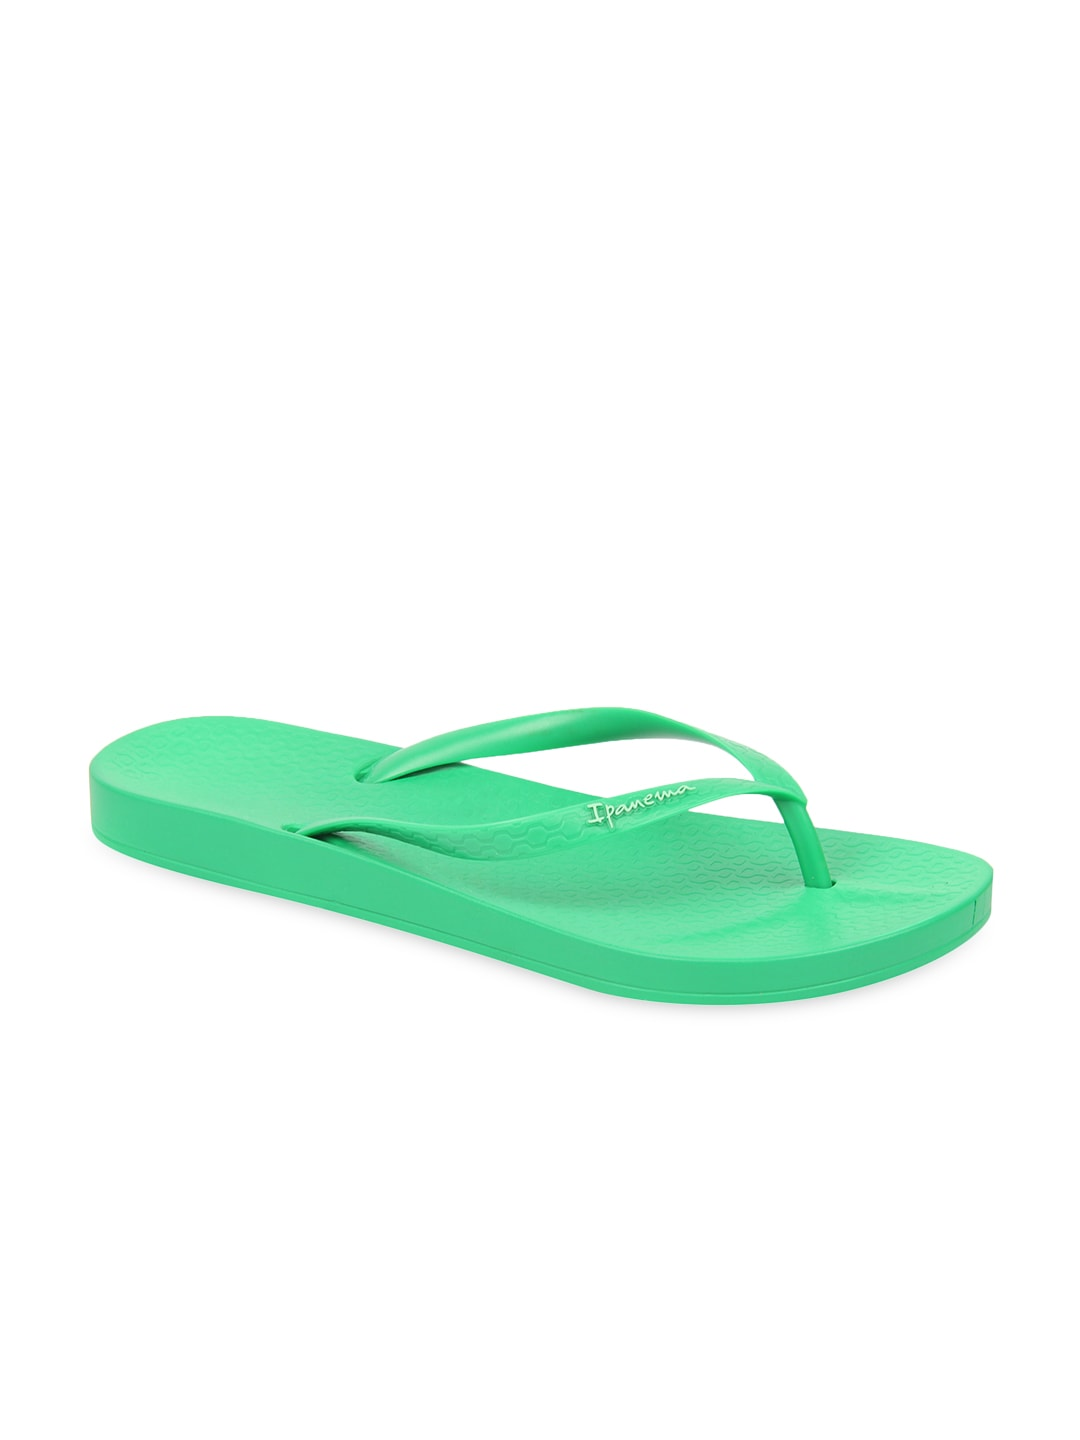 46823adc9 Ipanema Store - Buy Ipanema Footwear Online in India at Myntra